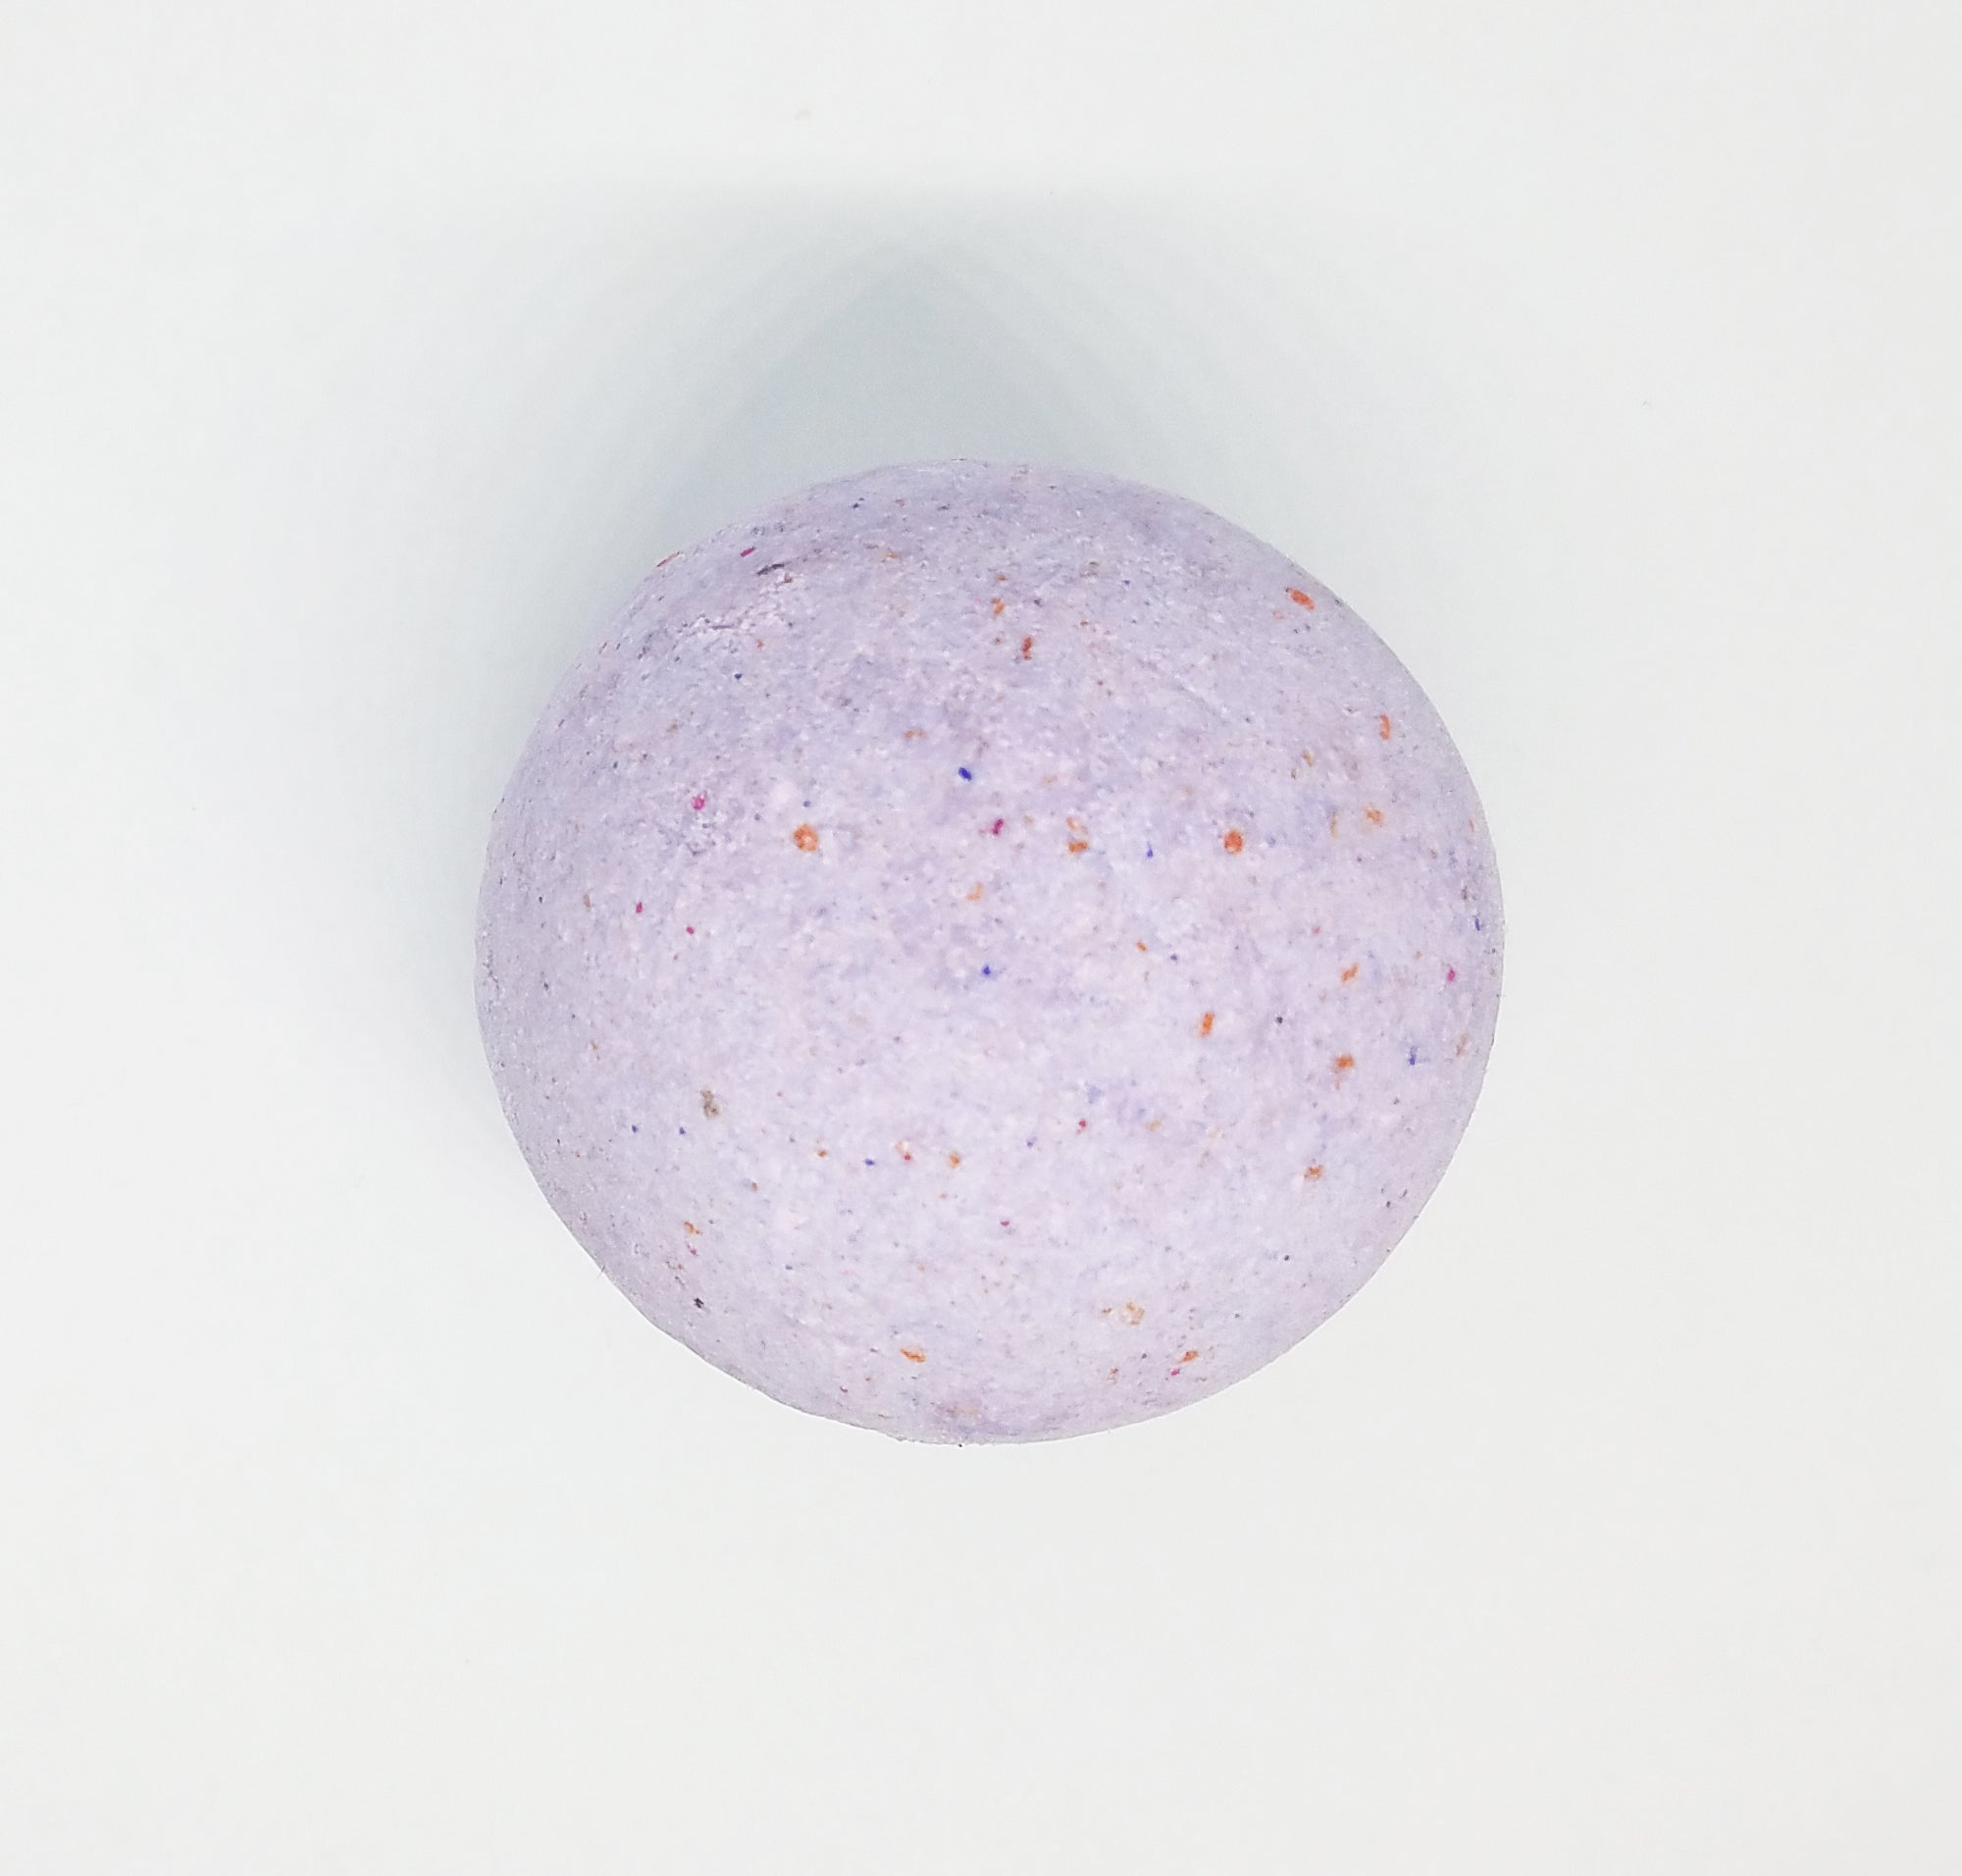 Strawberry Cream Bath Bomb (with Rose Quartz inside)